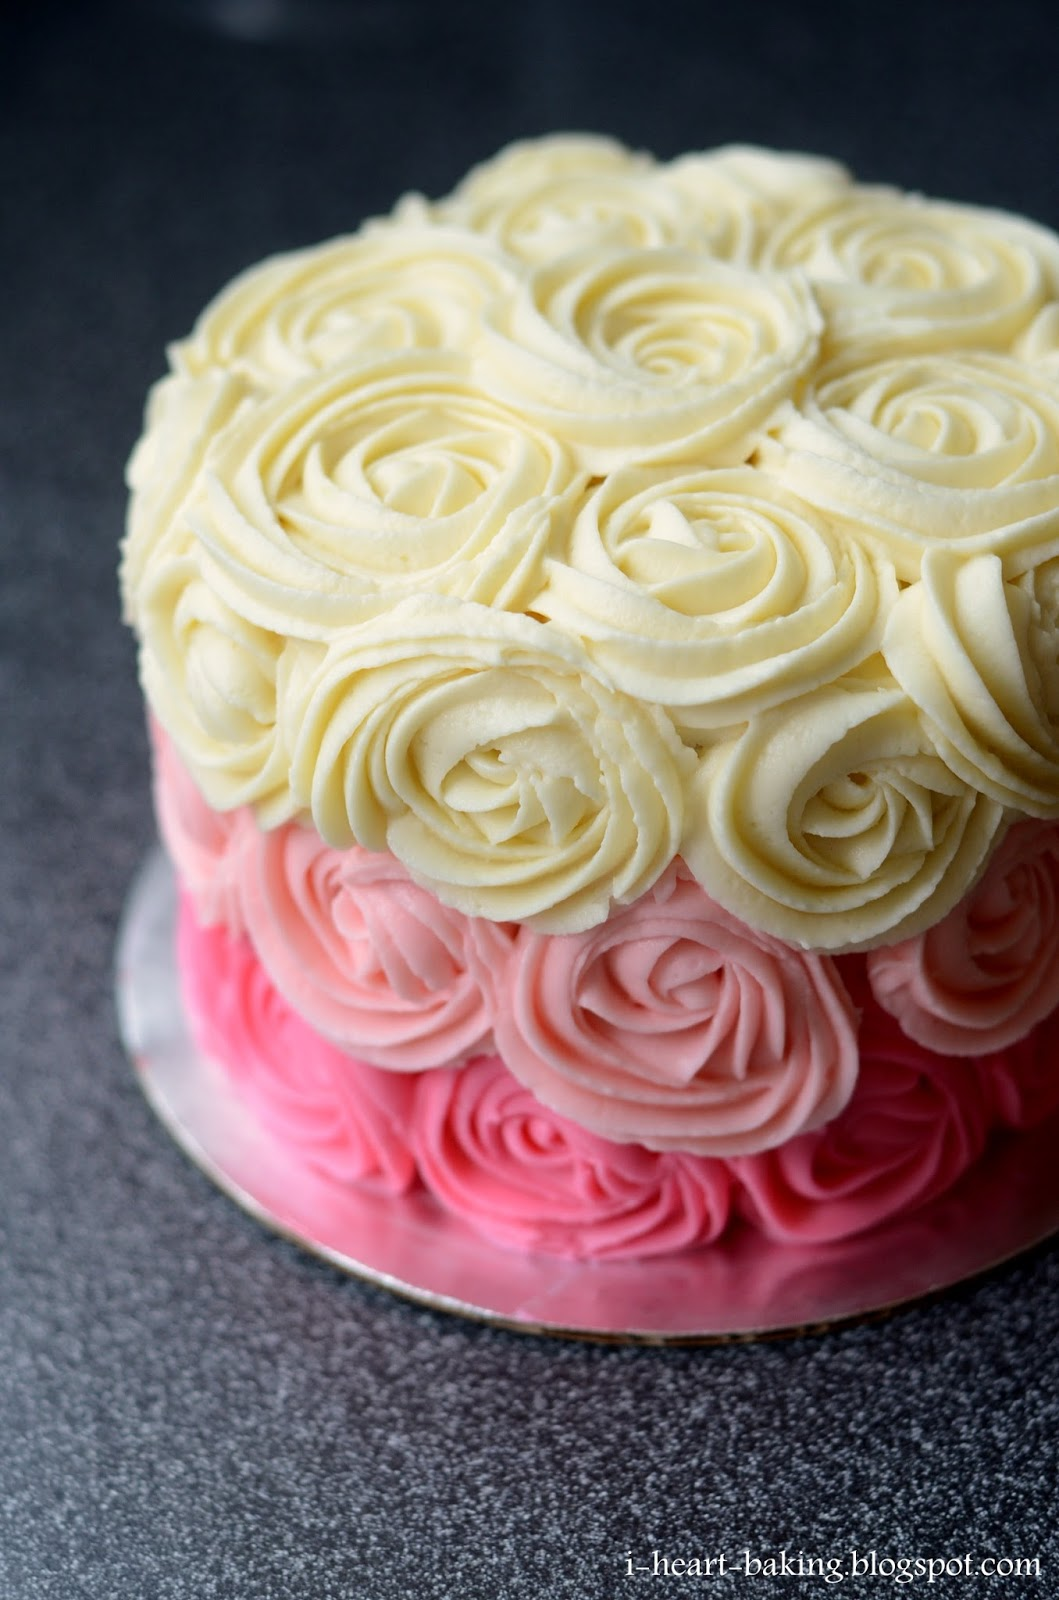 Cake Images Rose : i heart baking!: pink ombre rose cake